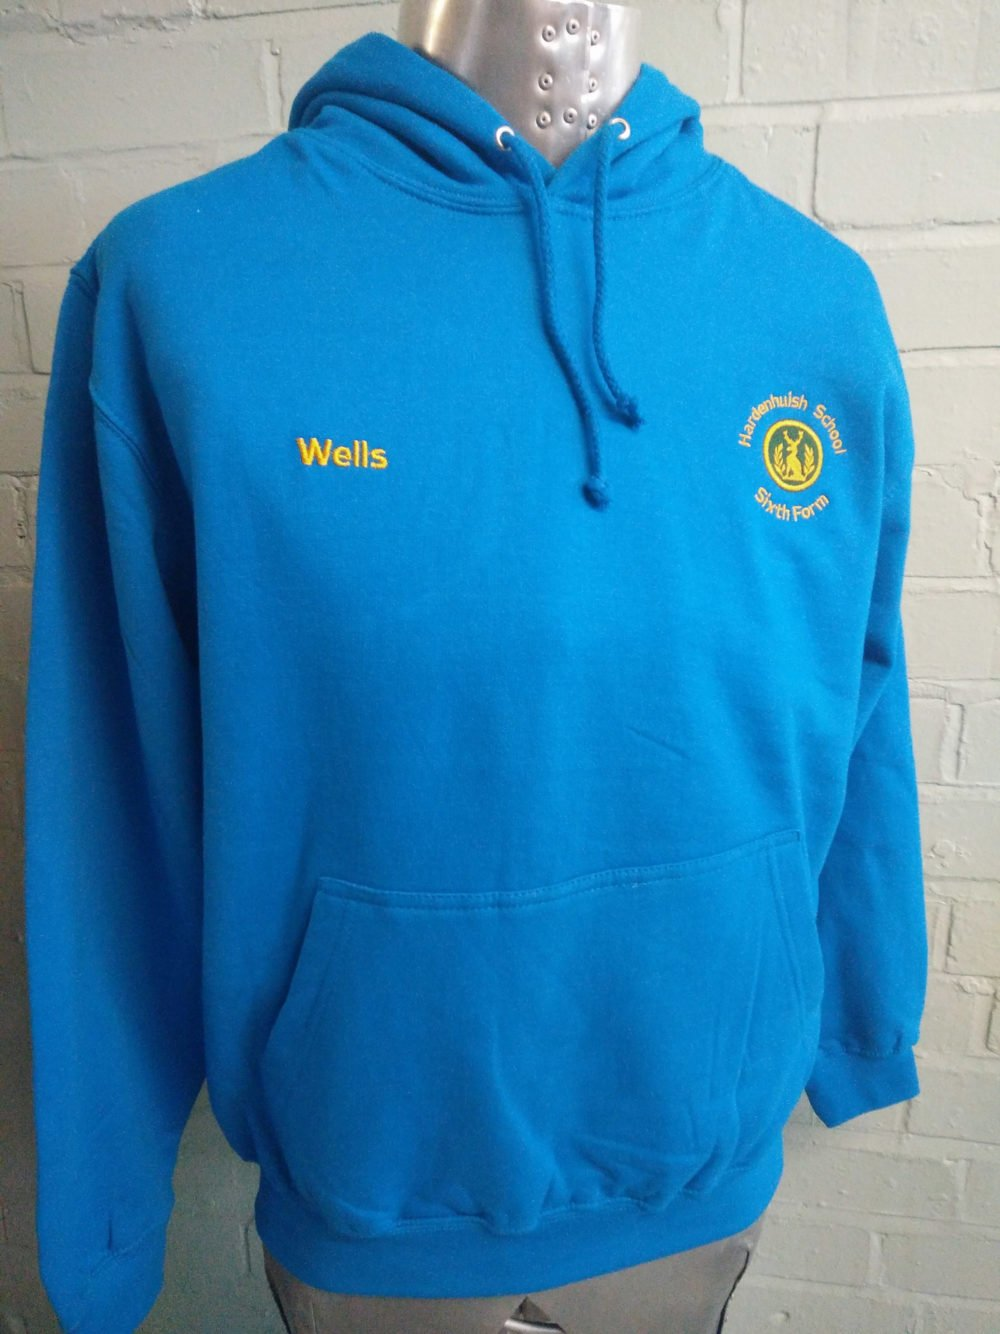 Sixth Form Leavers 2017 Blue Custom Hoodies